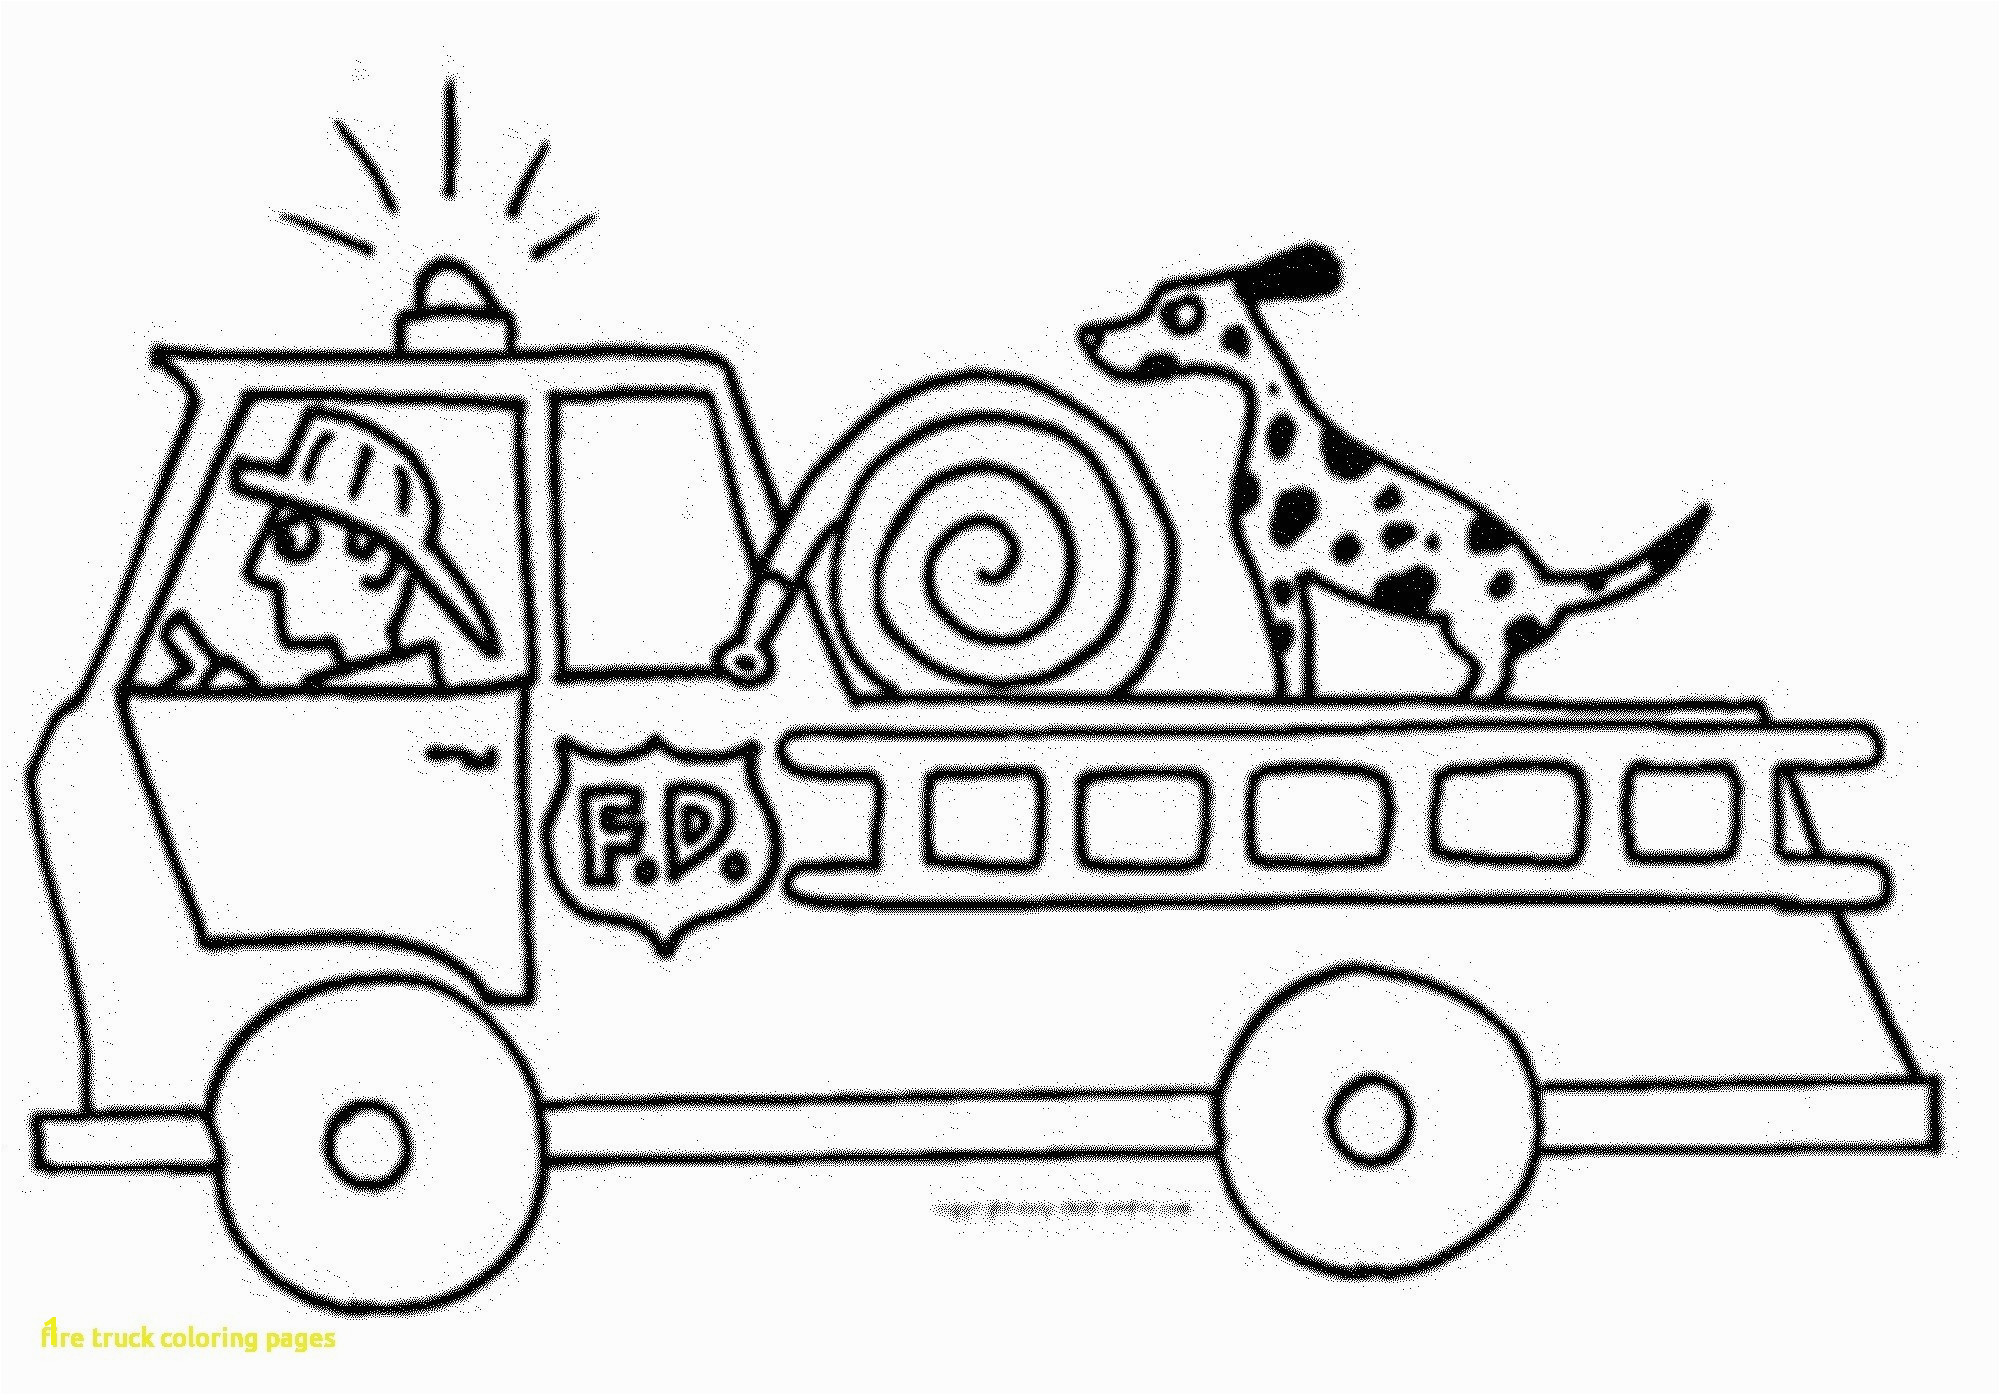 Fire Truck Coloring Pages Free Coloring Pages Fire Truck Coloring Page Color A Unusual Sheets